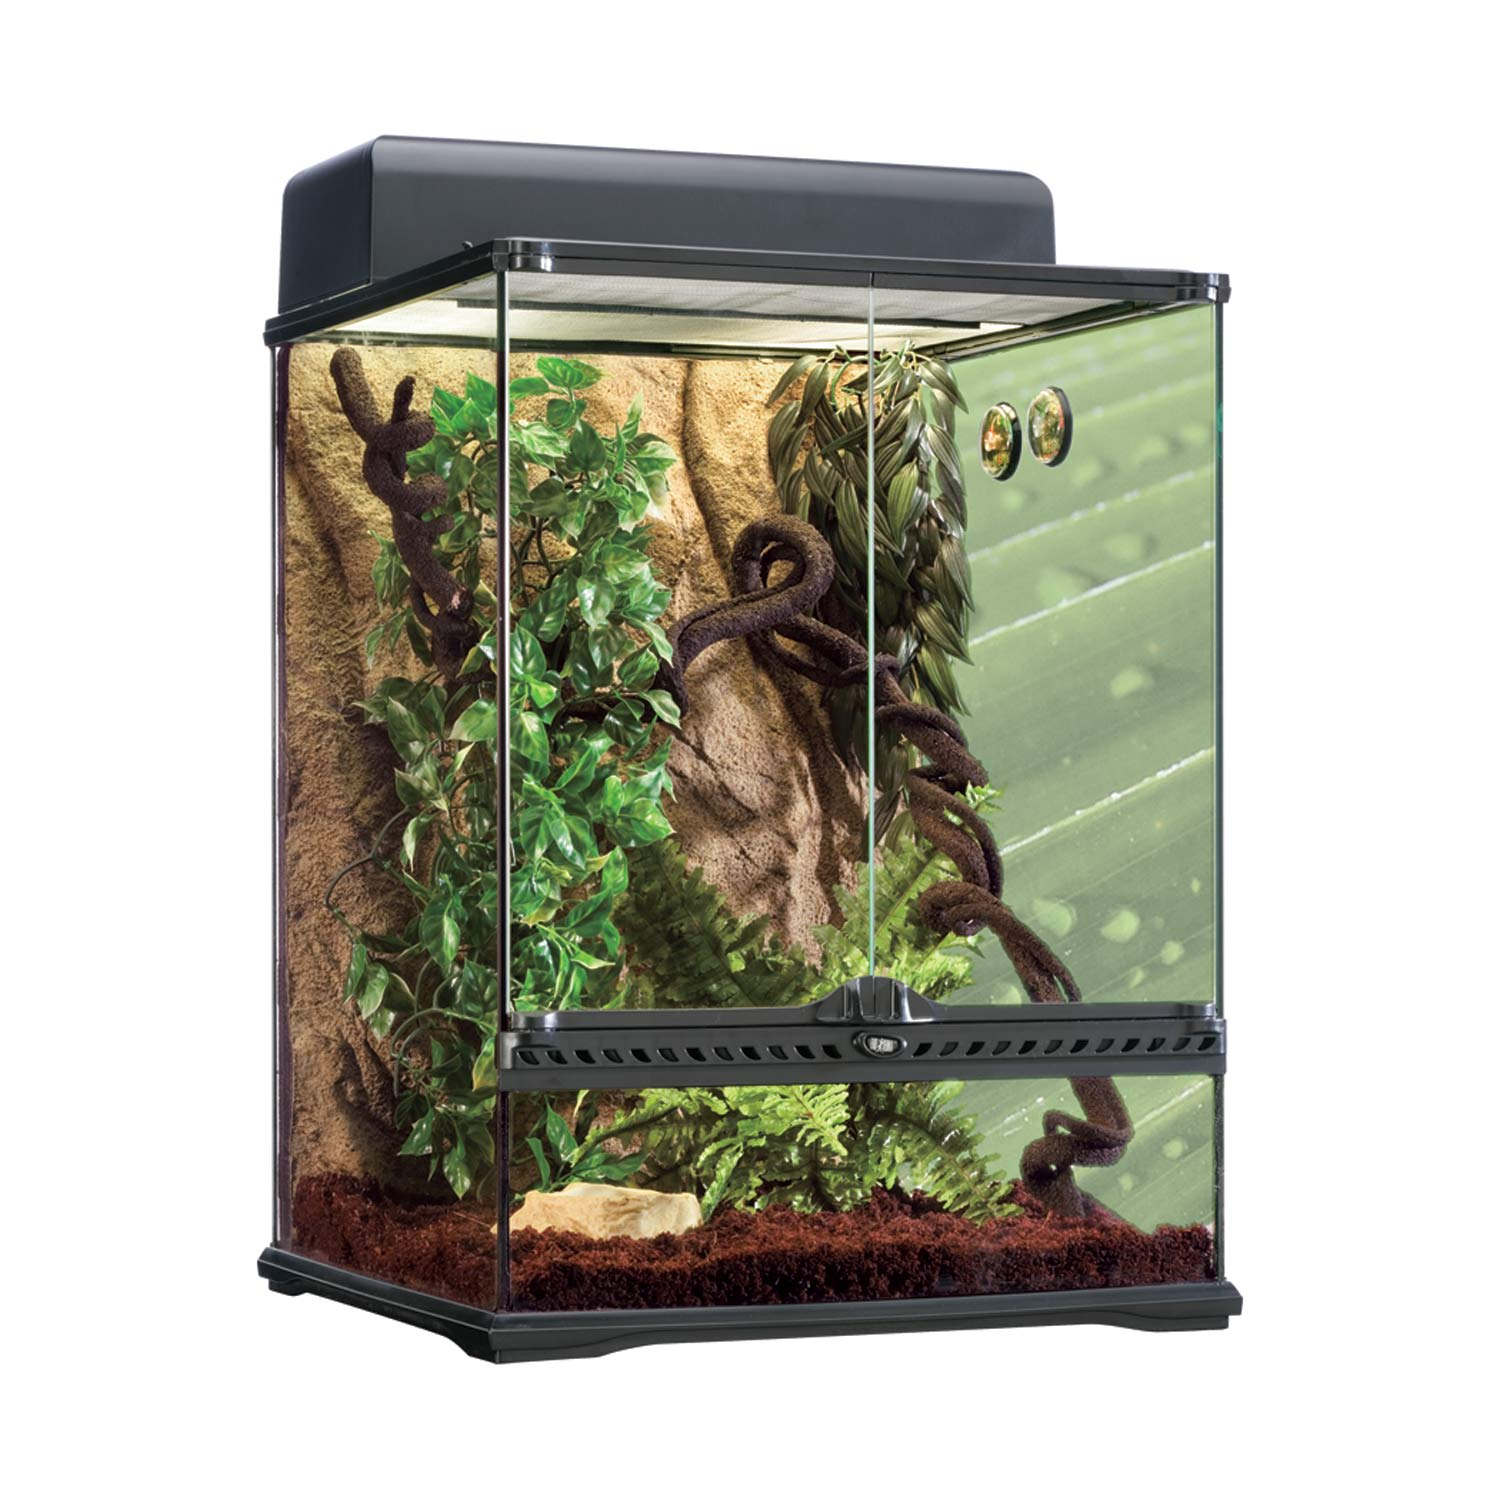 Exo Terra Rainforest Reptile Terrarium Kit Medium Petco